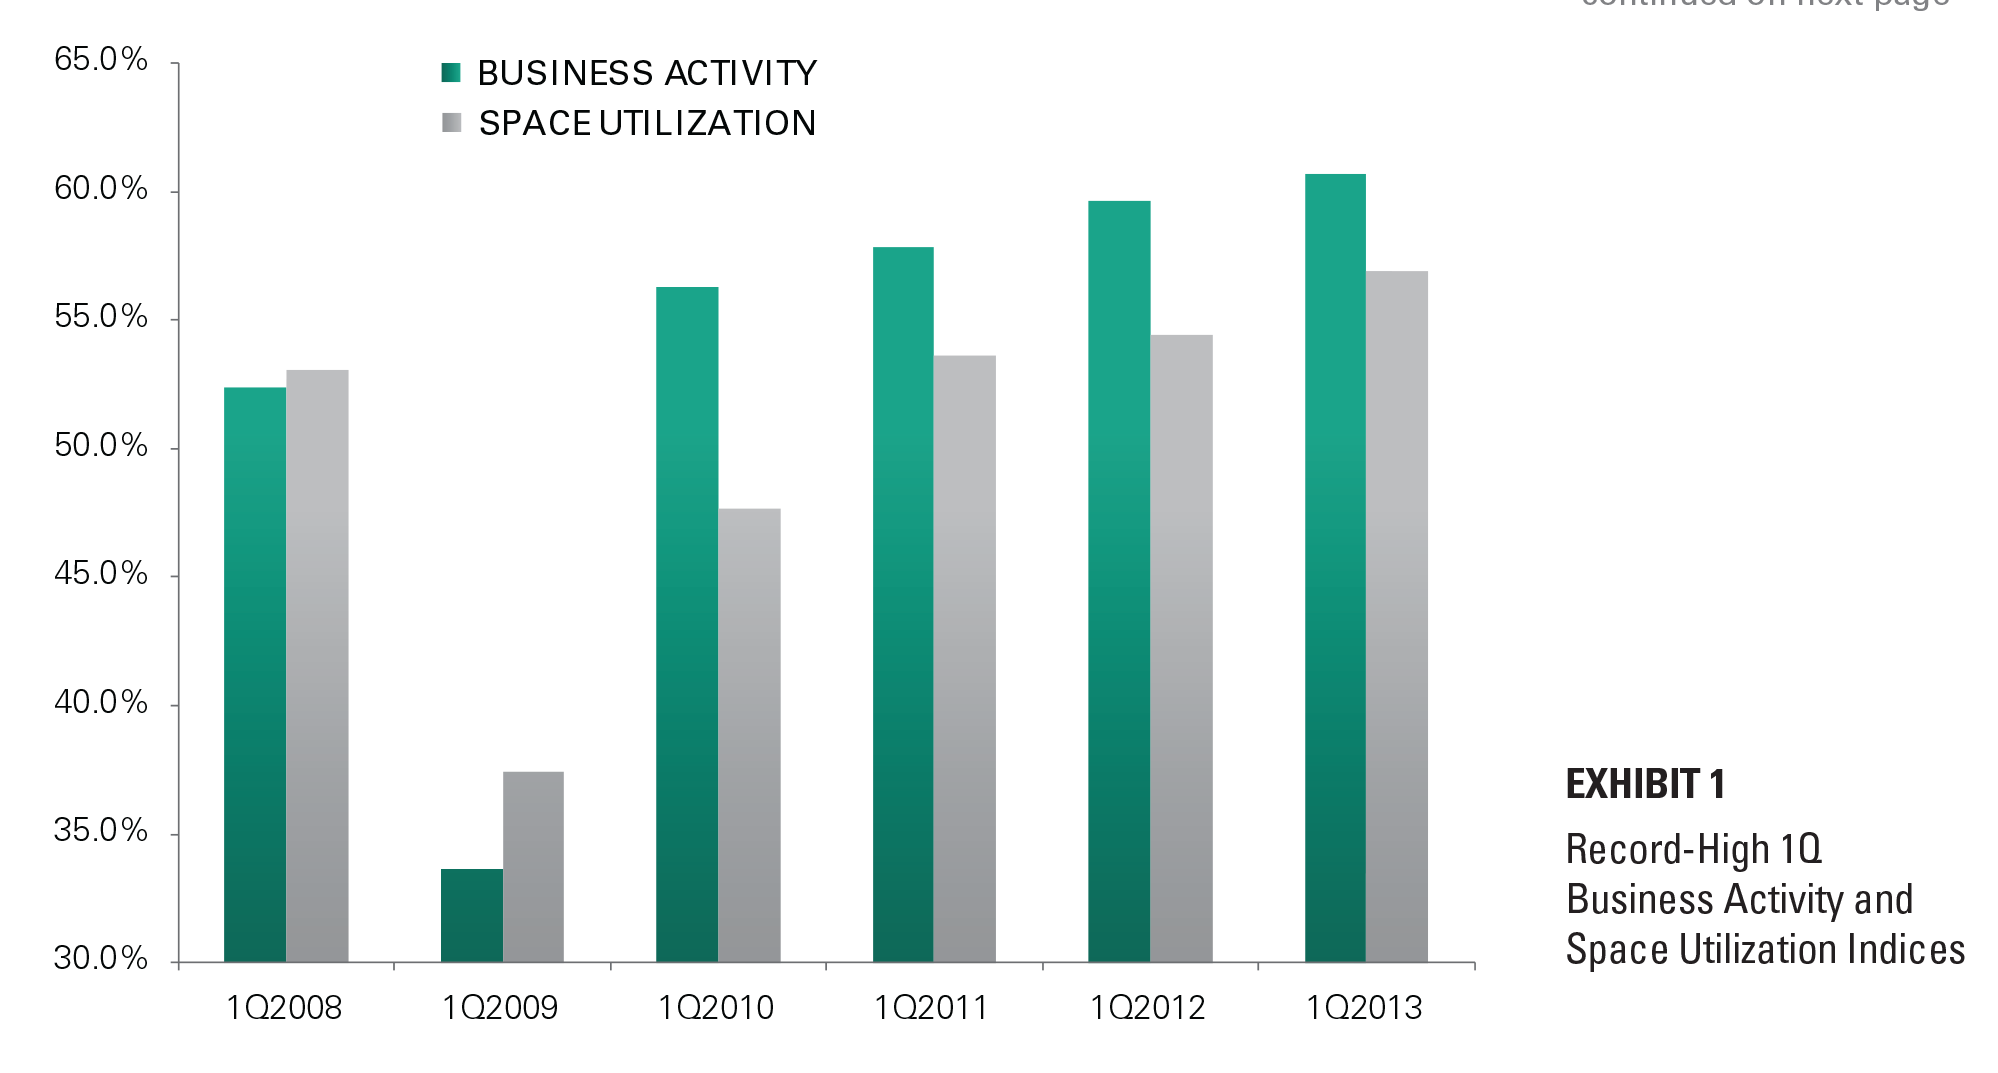 EXHIBIT 1 Record-High 1Q Business Activity and Space Utilization Indices